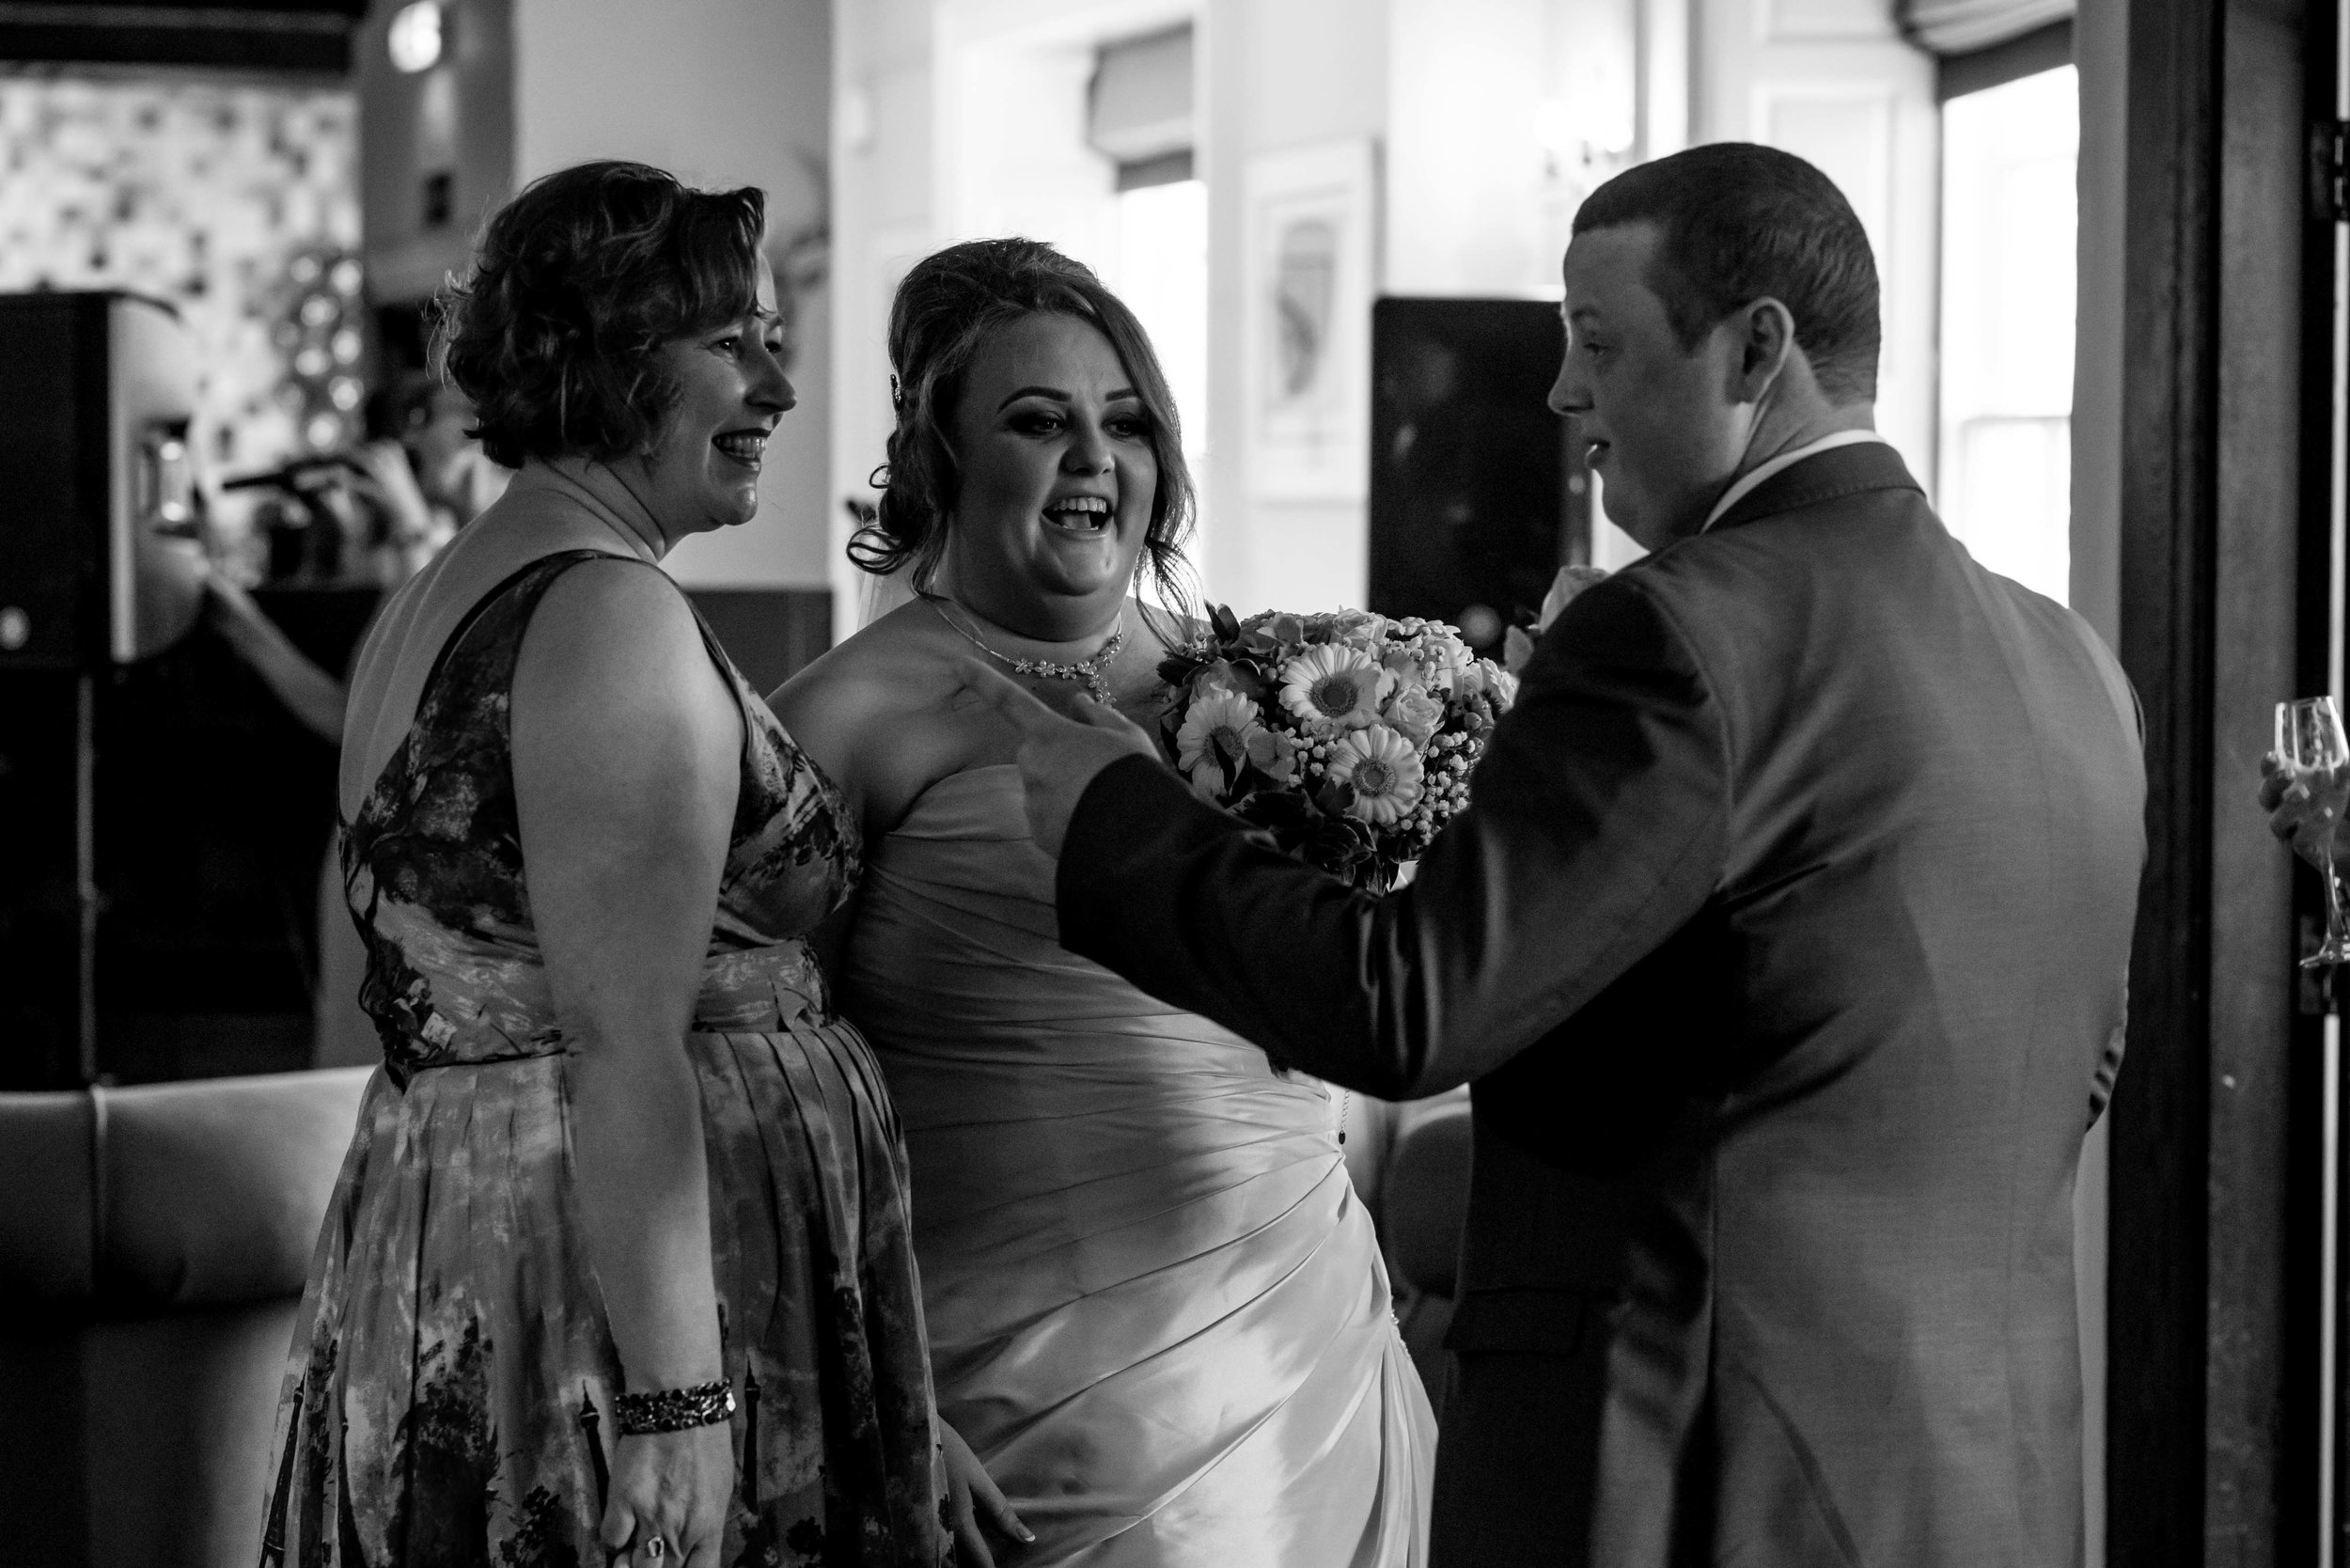 The bride and groom share a laugh with a wedding guest straight after their wedding ceremony